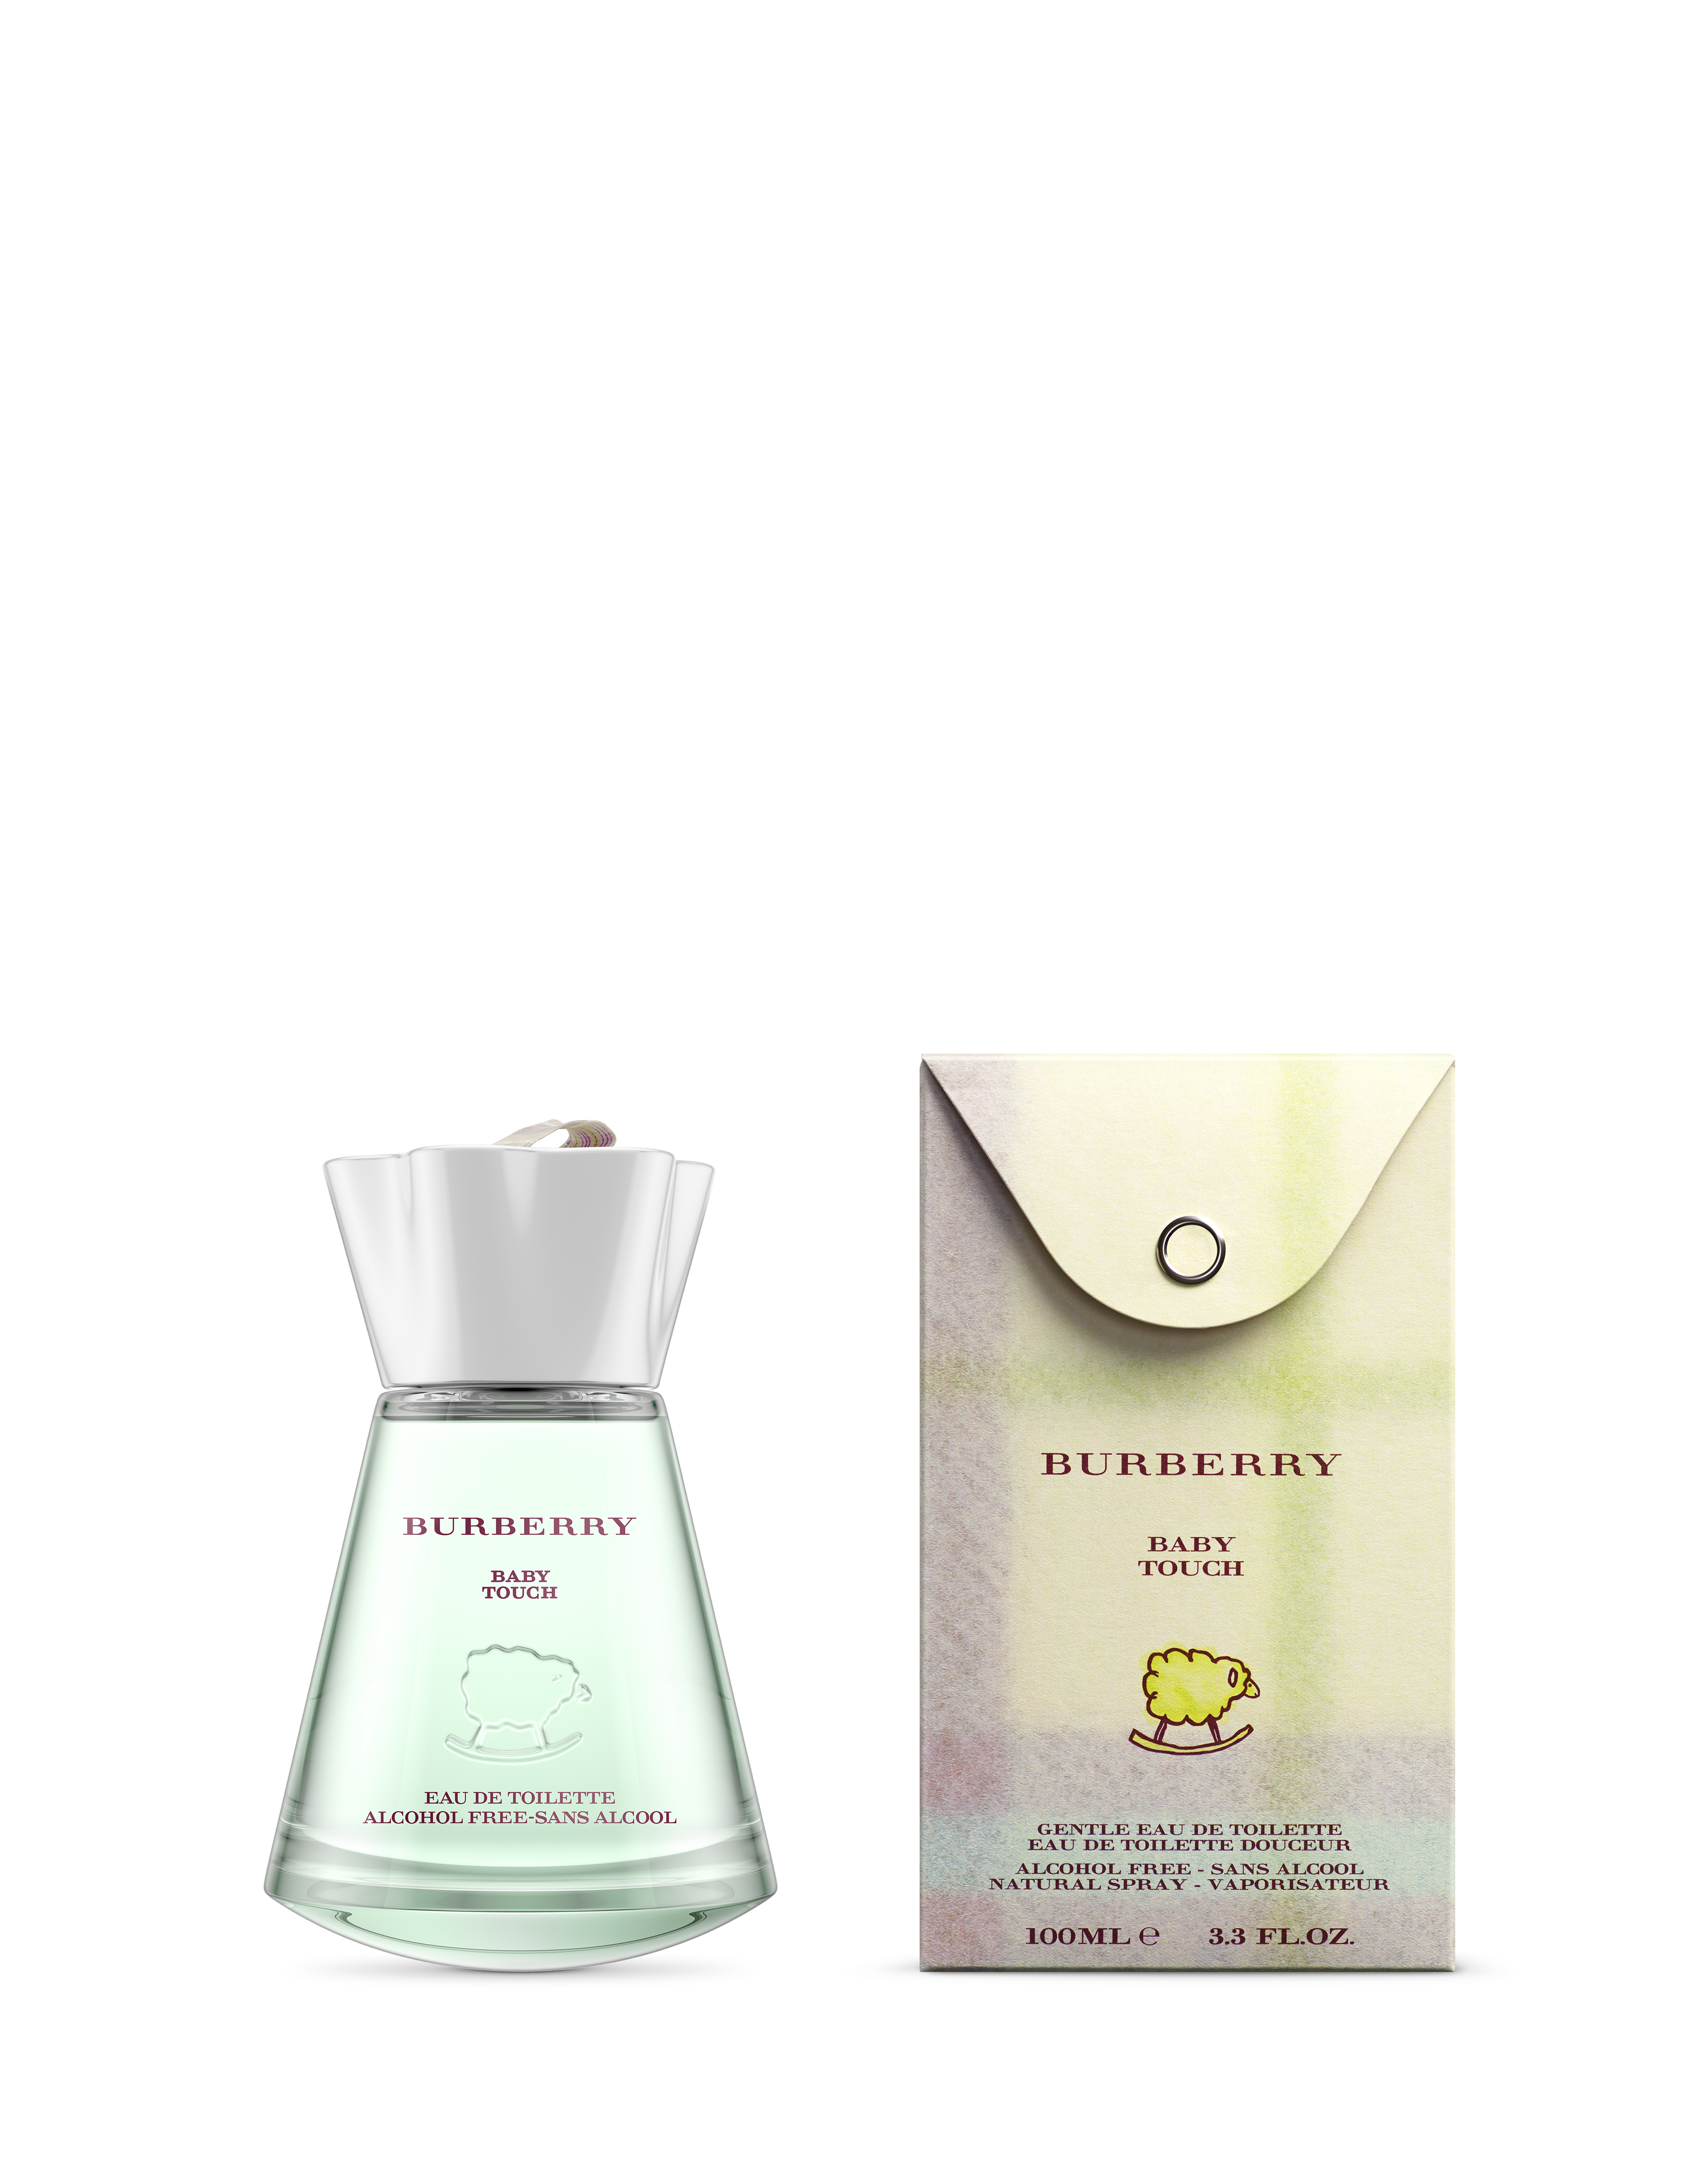 BURBERRY BABY TOUCH 100 ML SALCOHOL VP.